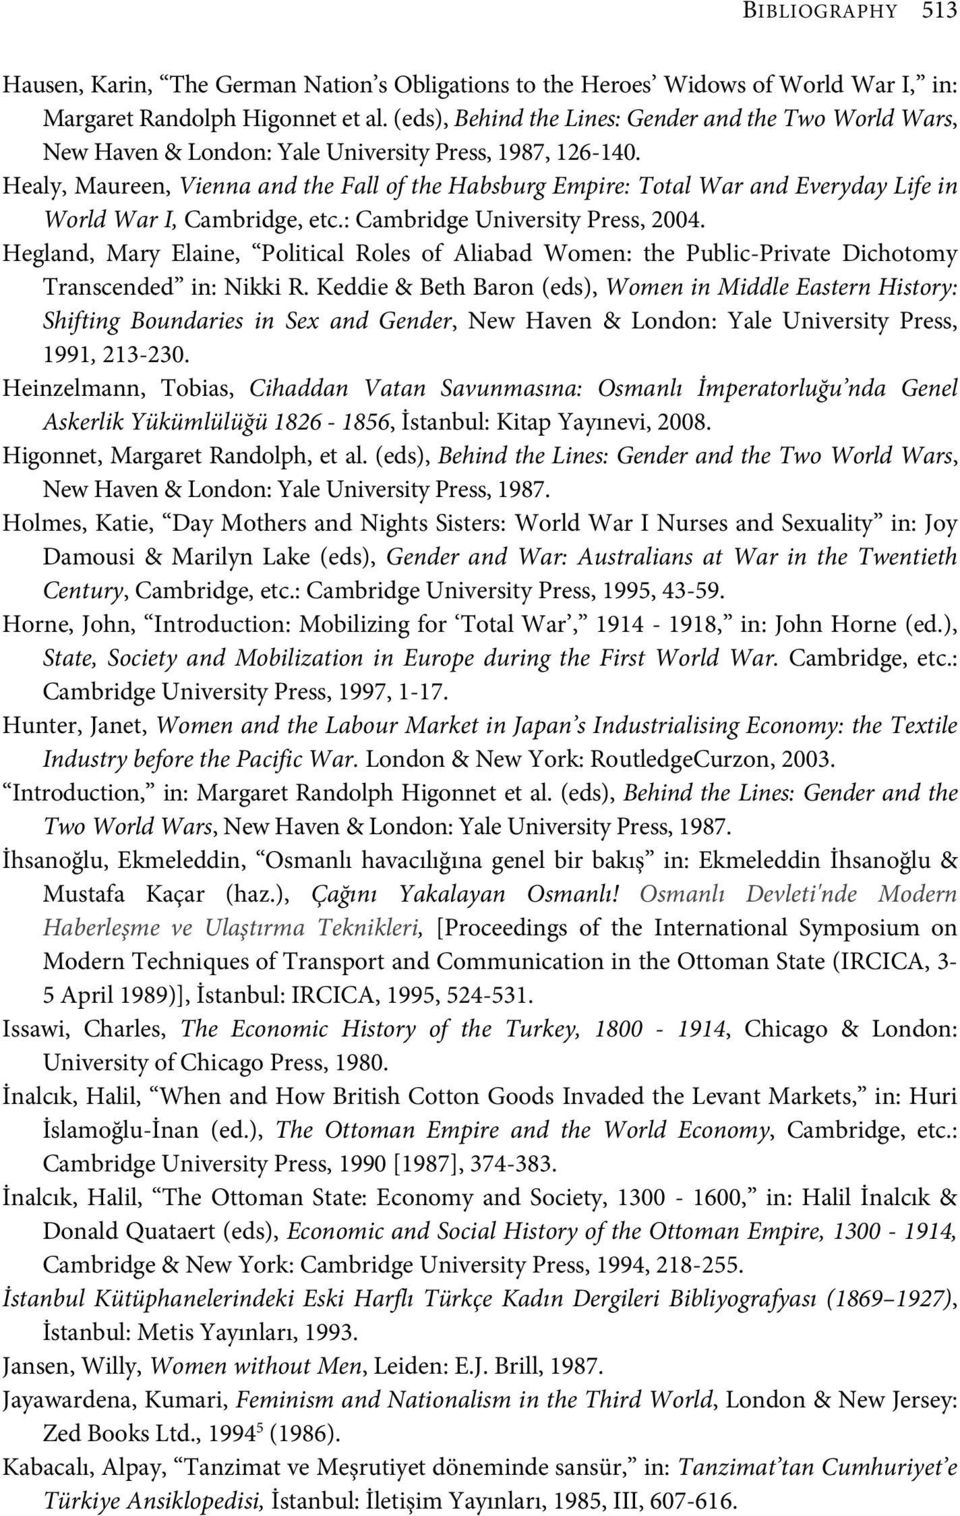 Healy, Maureen, Vienna and the Fall of the Habsburg Empire: Total War and Everyday Life in World War I, Cambridge, etc.: Cambridge University Press, 2004.